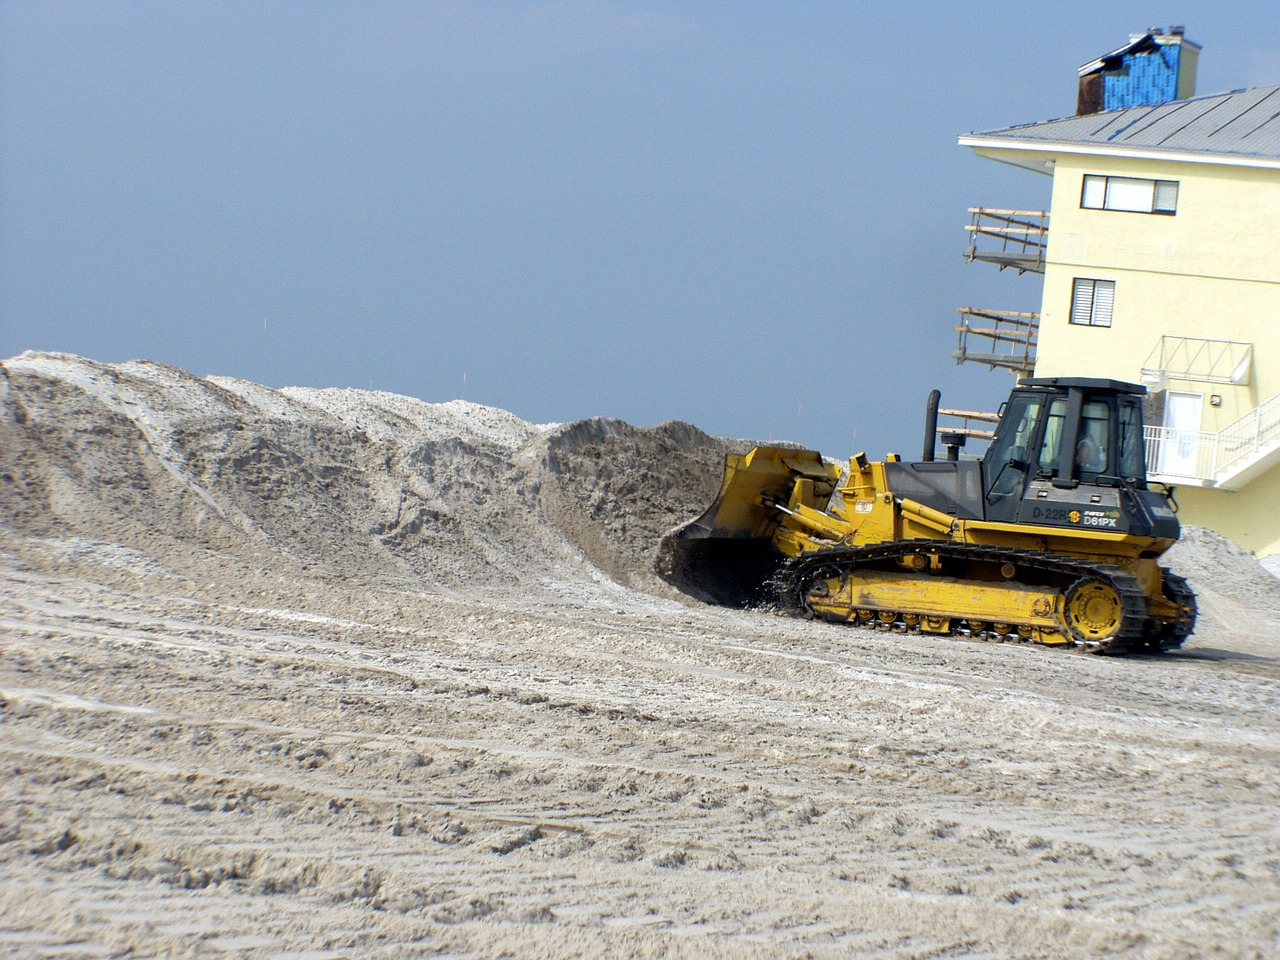 pensacola beach,florida,bulldozer,beach,sand,sky,clouds,hurricane cleanup,nature,outside,sea,ocean,free pictures, free photos, free images, royalty free, free illustrations